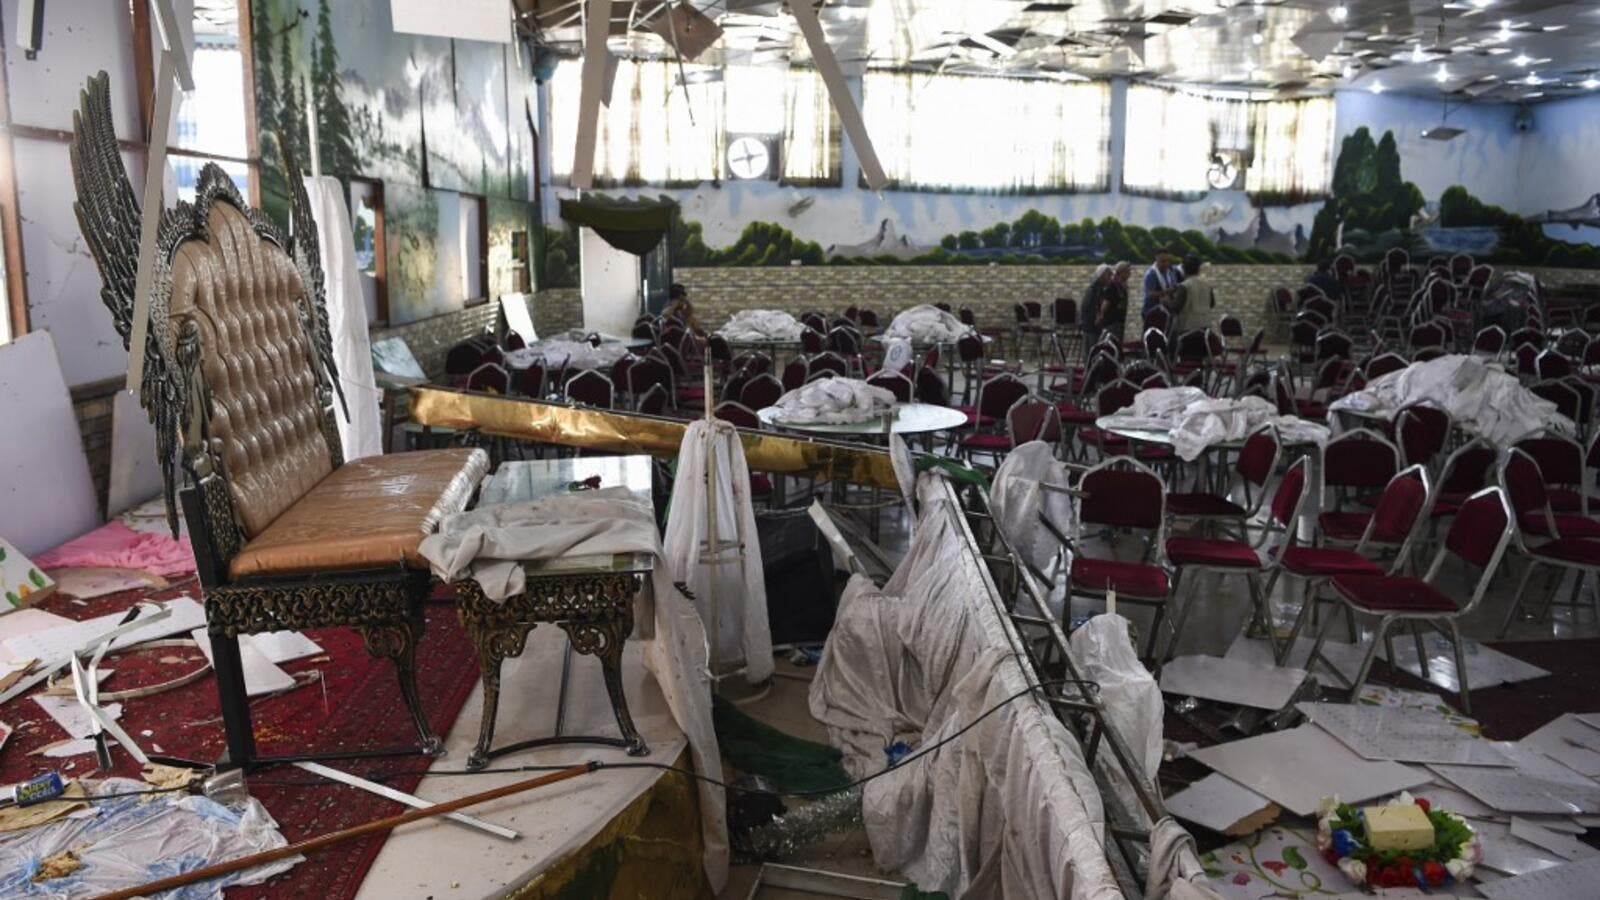 Afghan men investigate in a wedding hall after a deadly bomb blast in Kabul. (AFP/ File Photo)